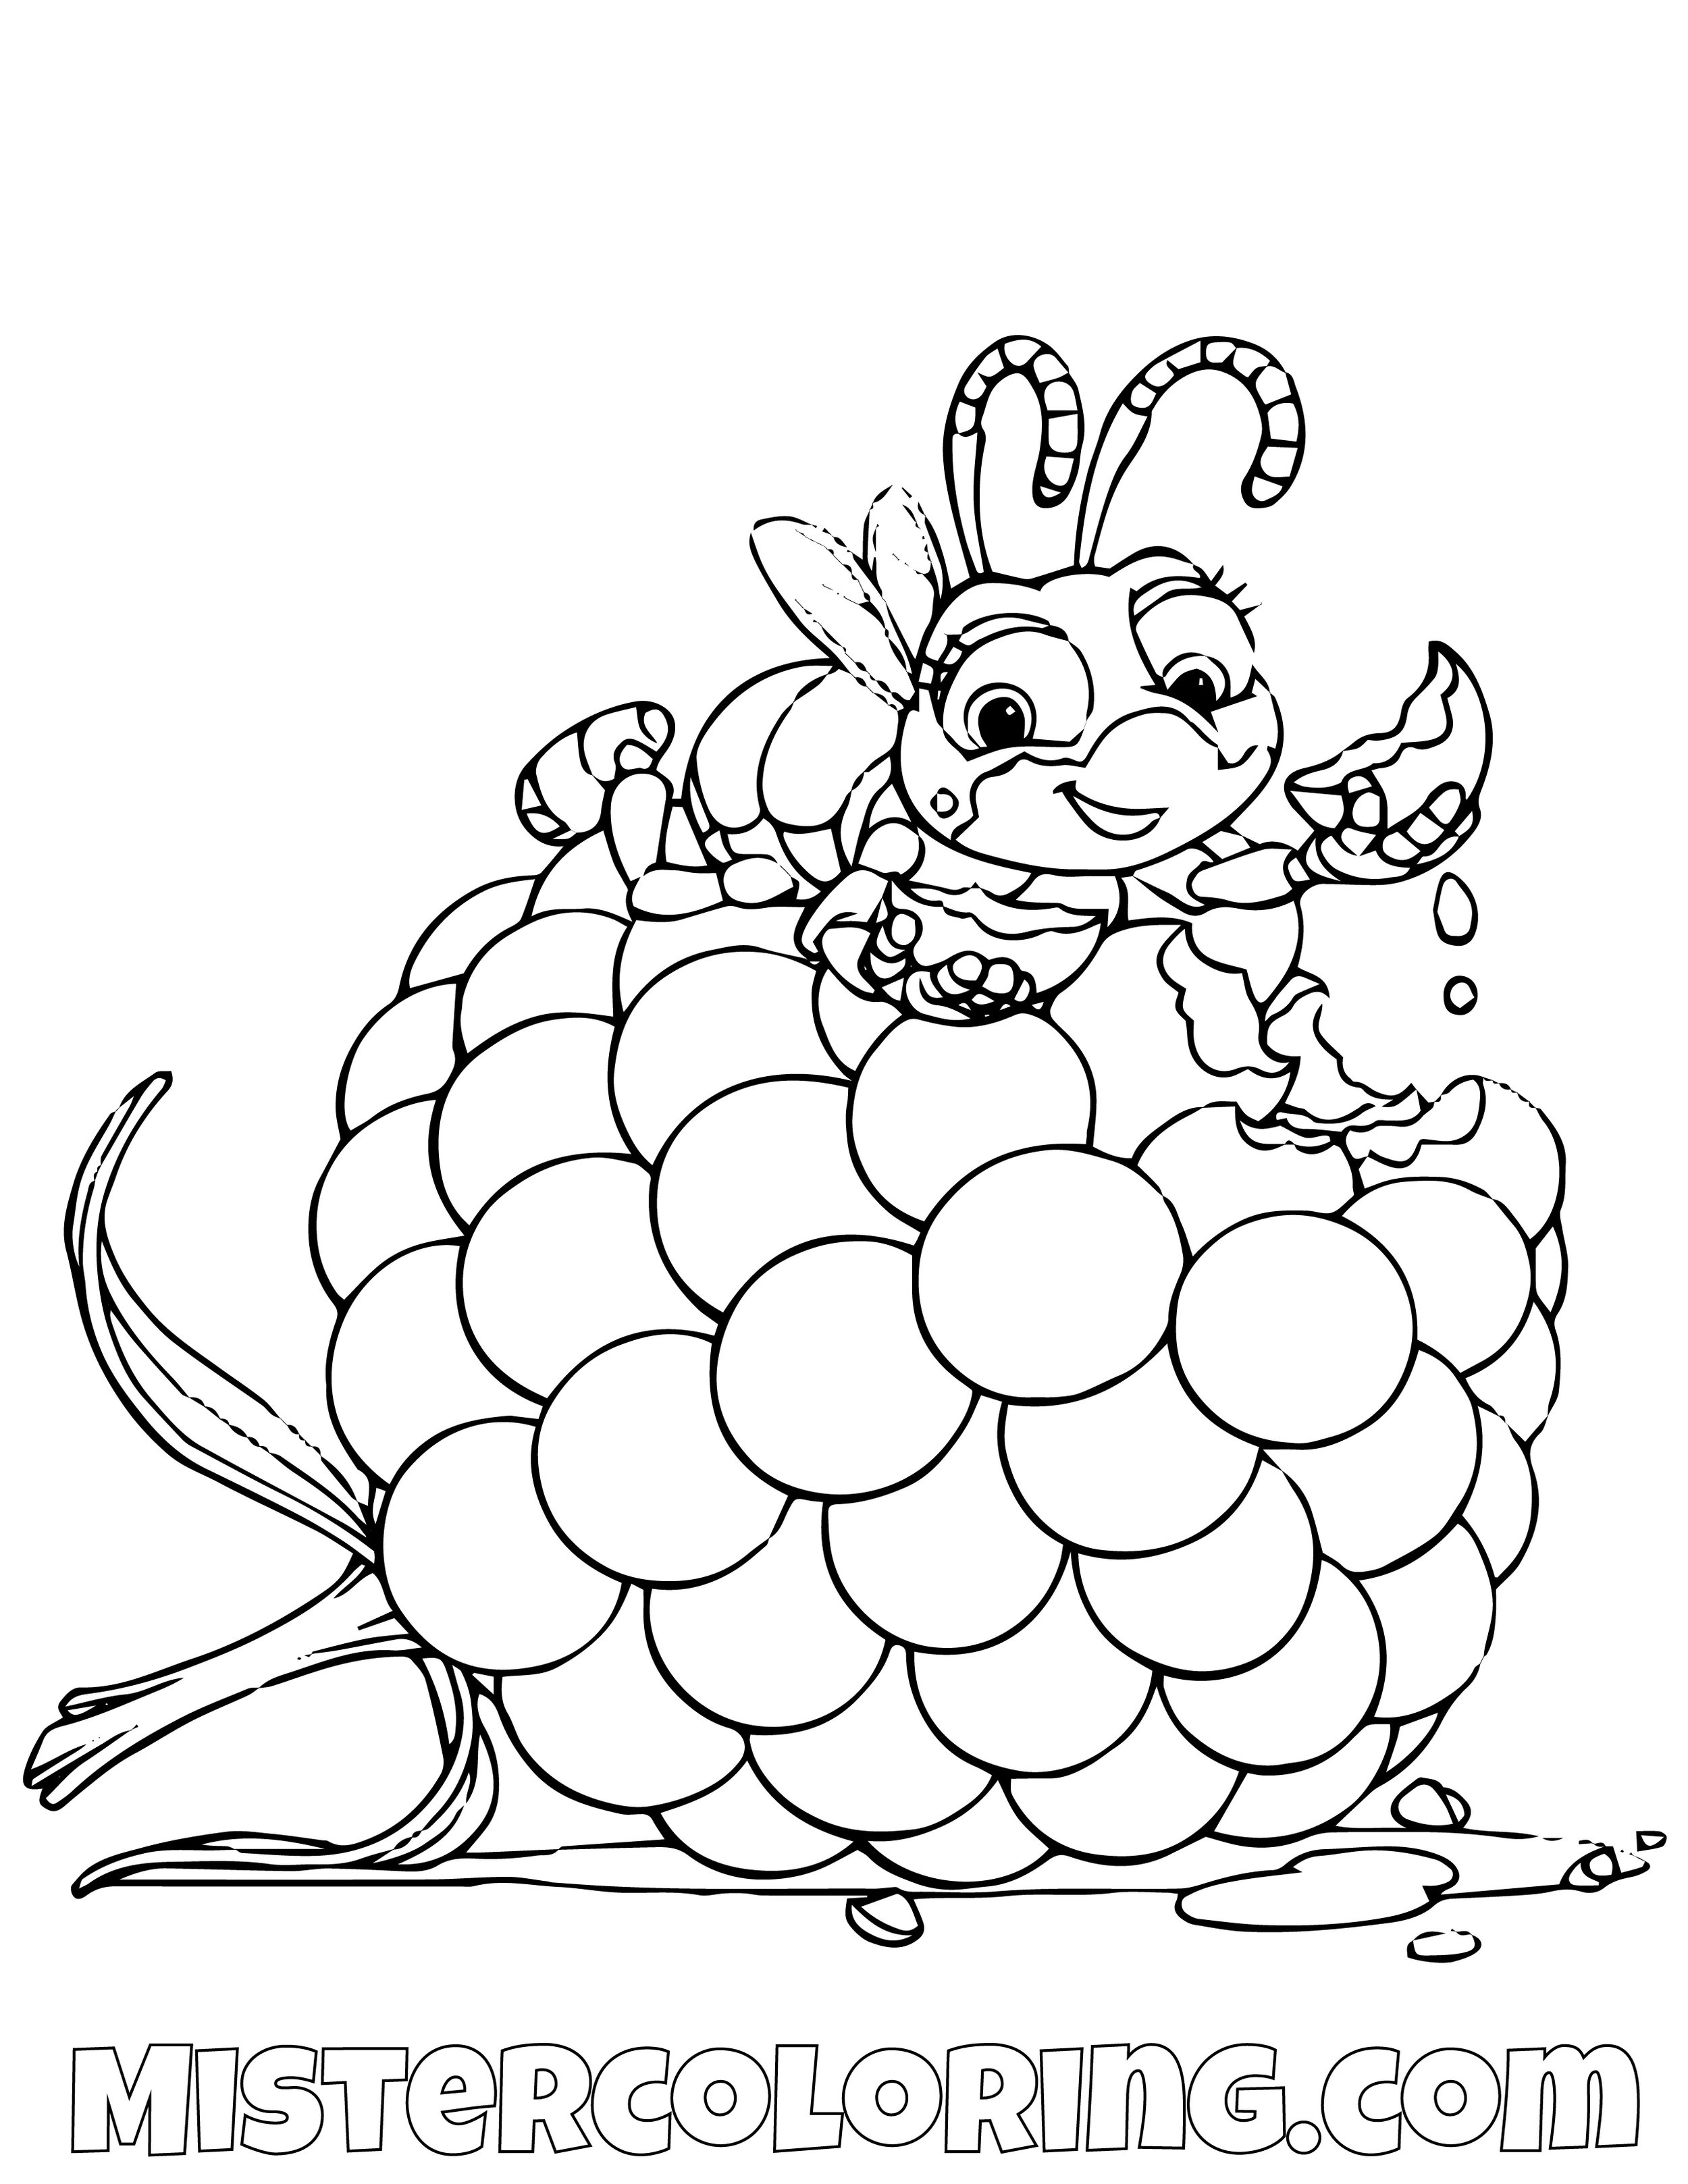 Dot Eating A Grape A Bugs Life Coloring Page